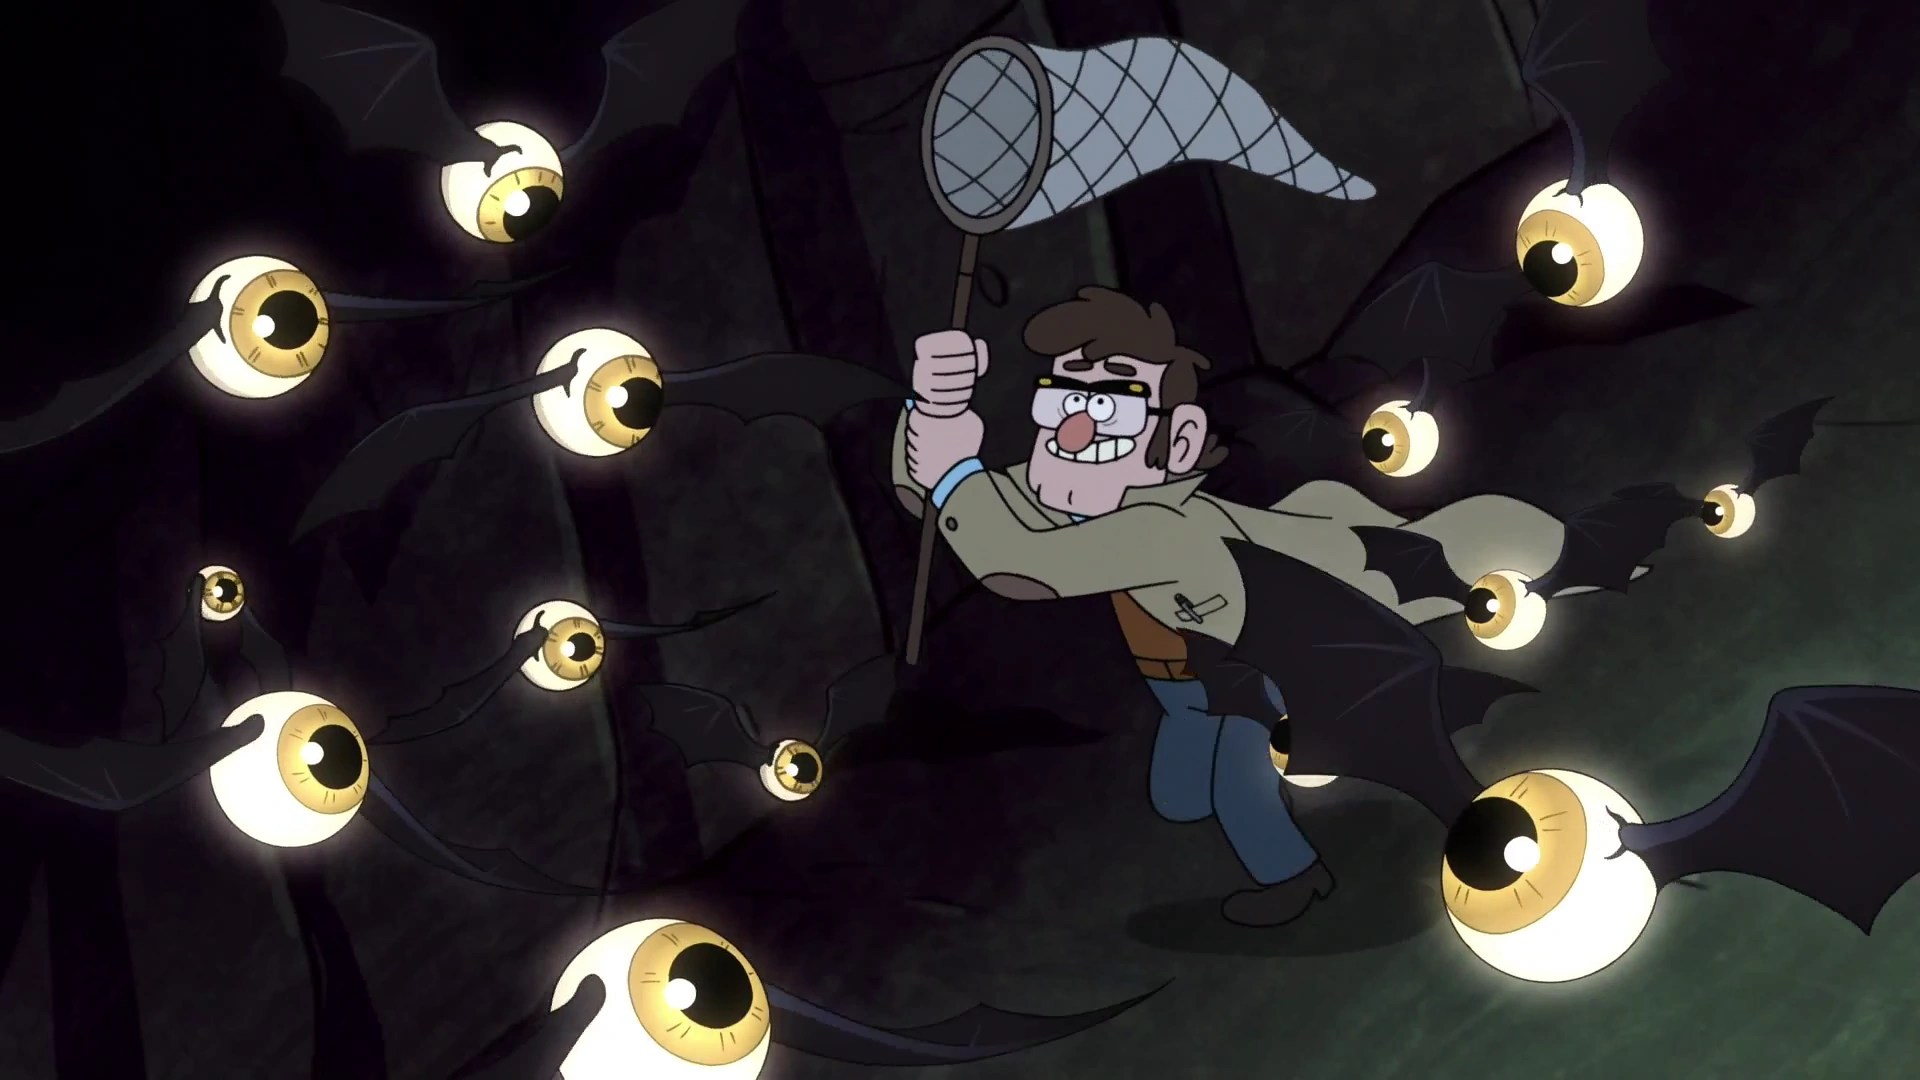 Gravity Falls Waddles Wallpaper Eye Bats Gravity Falls Wiki Fandom Powered By Wikia